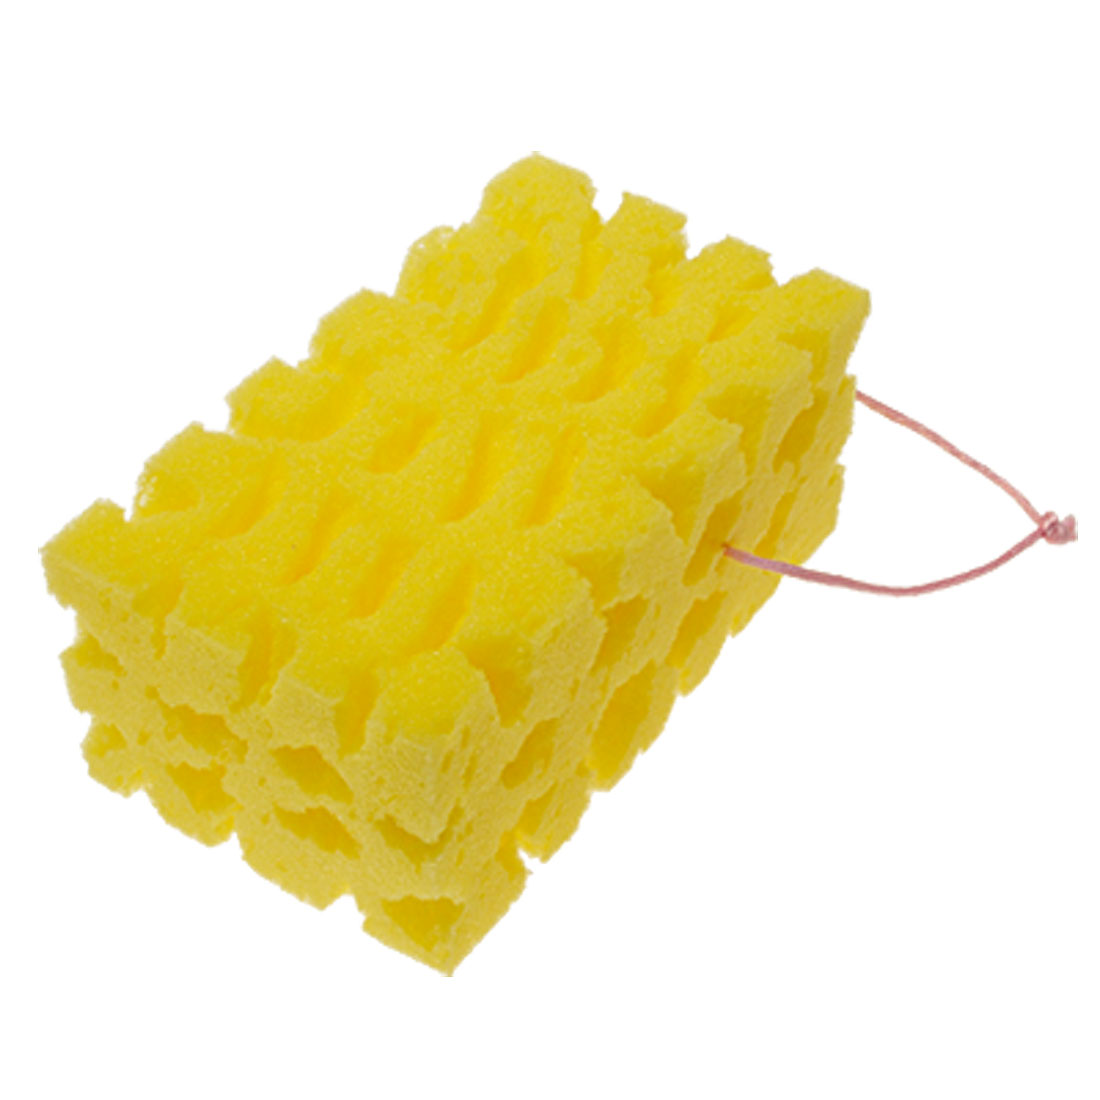 Yellow Car Washing Cleaning Sponge Block w. Hand Strap